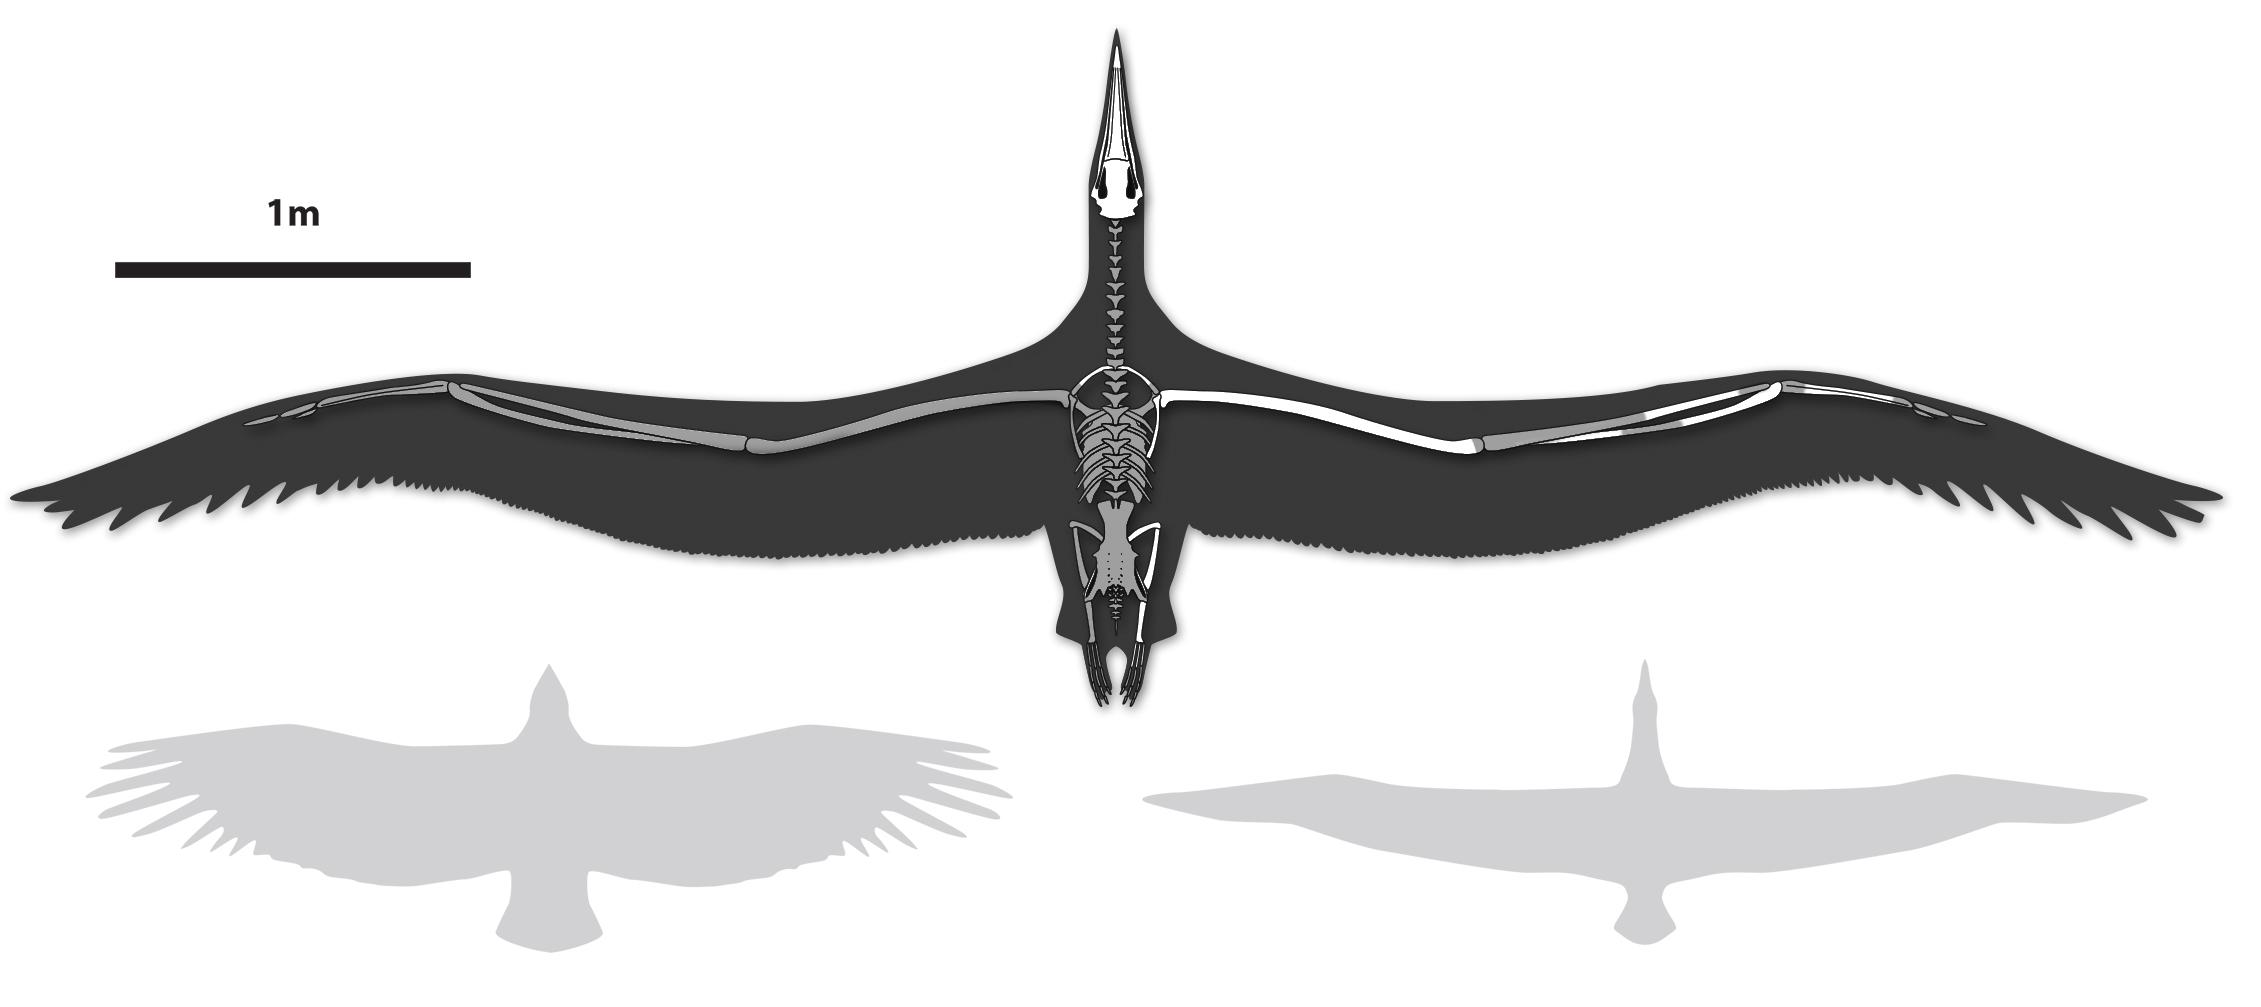 Largest-Ever-Flying-Bird